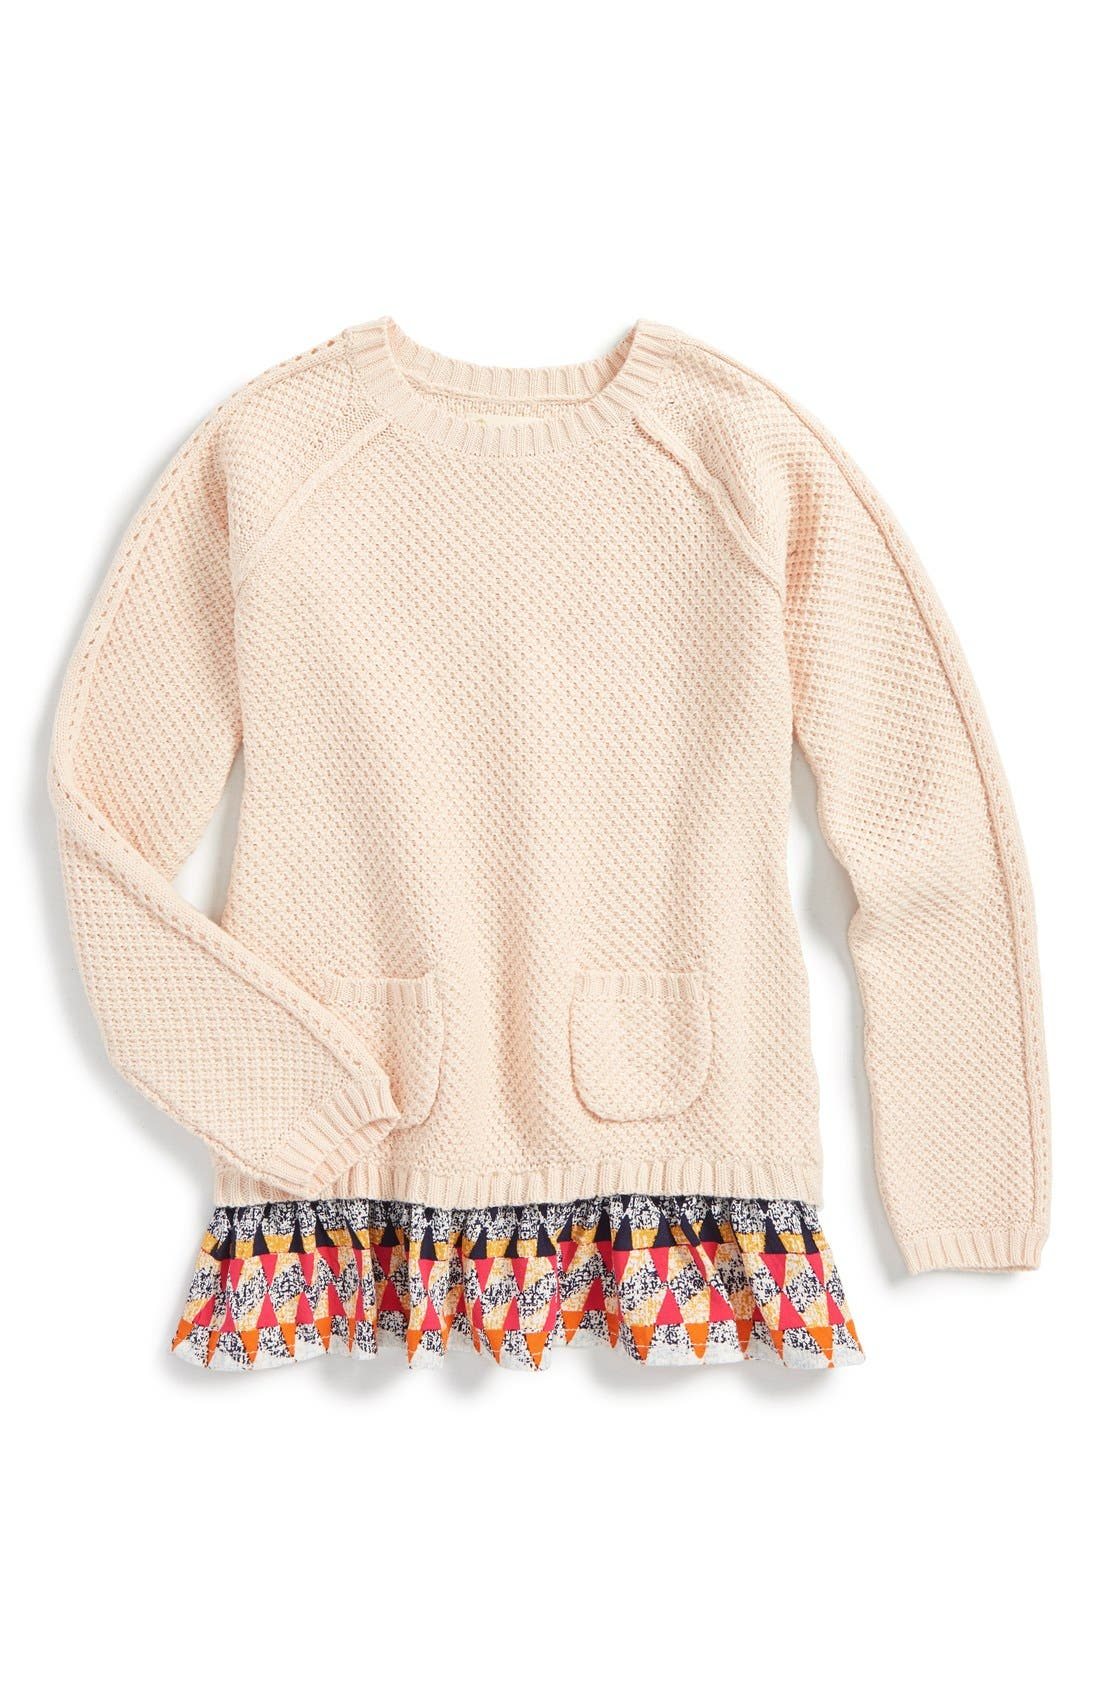 Alternate Image 1 Selected - Tucker + Tate Layered Ruffle Sweater (Toddler Girls, Little Girls & Big Girls)